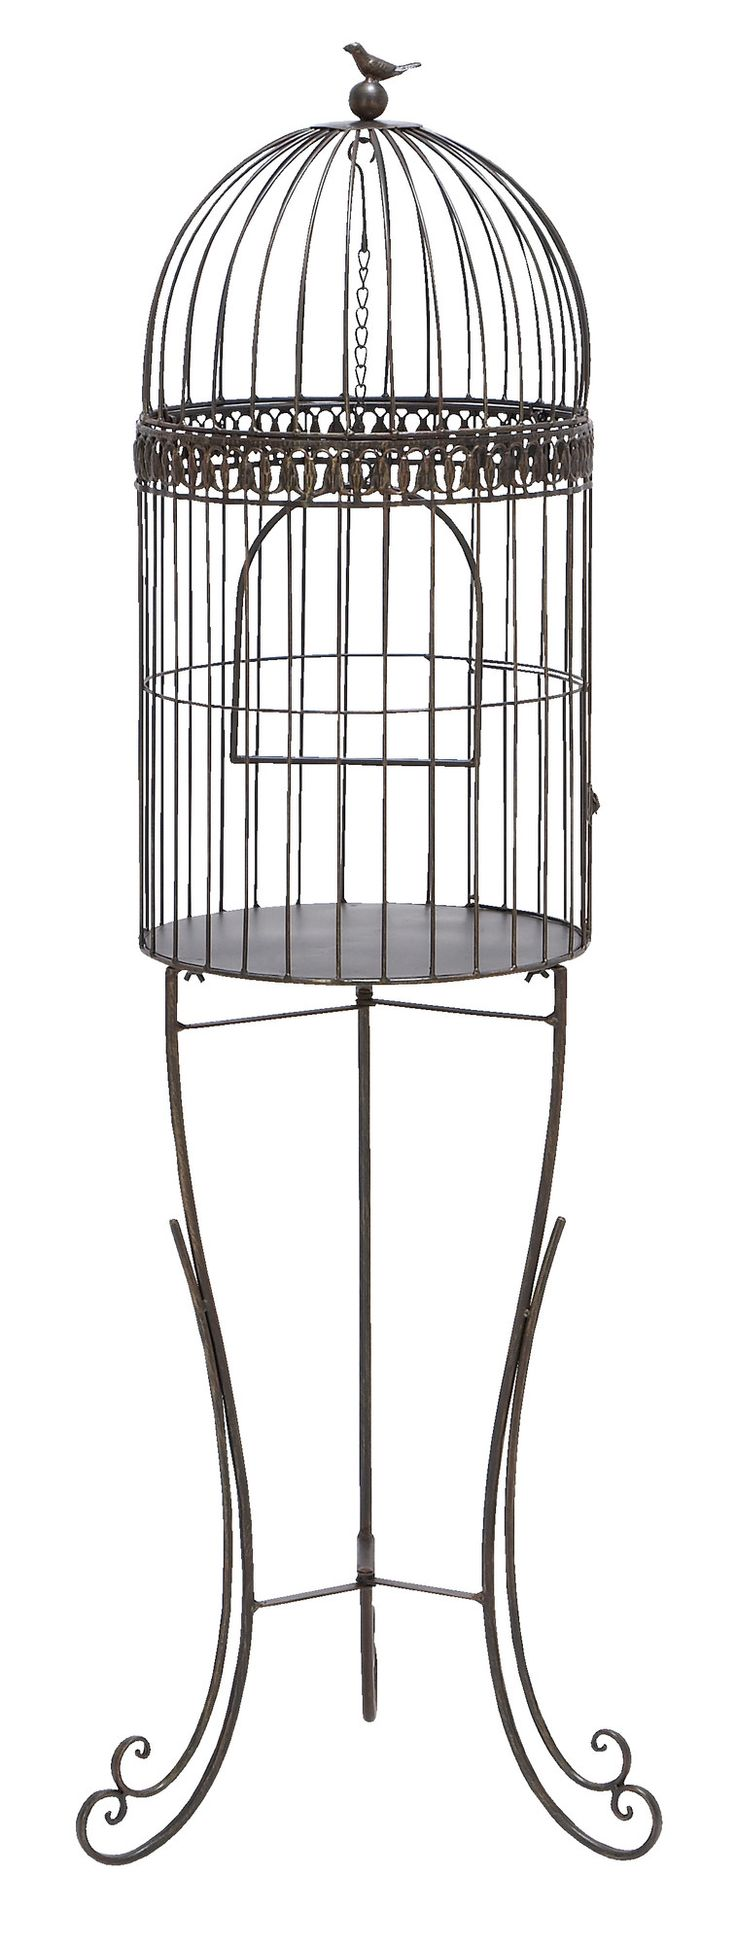 1434 best bird cages images on pinterest bird houses birdhouse and birdhouses. Black Bedroom Furniture Sets. Home Design Ideas